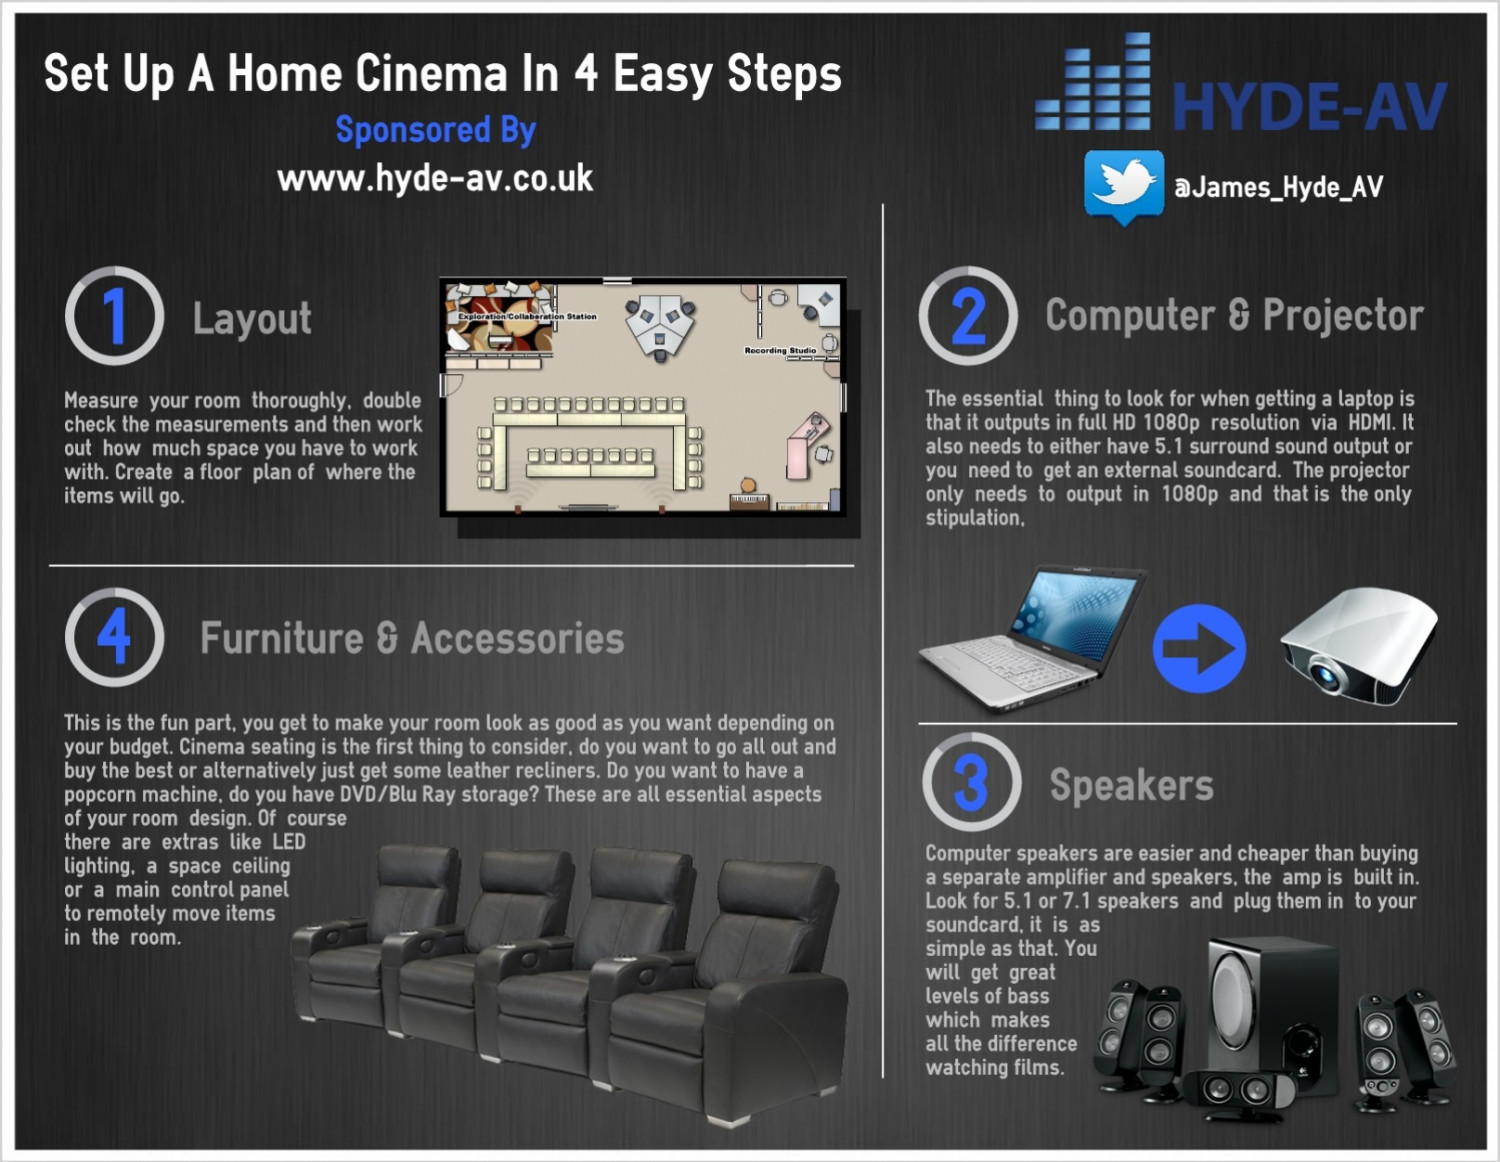 Set Up A Home Cinema In 4 Easy Steps Infographic